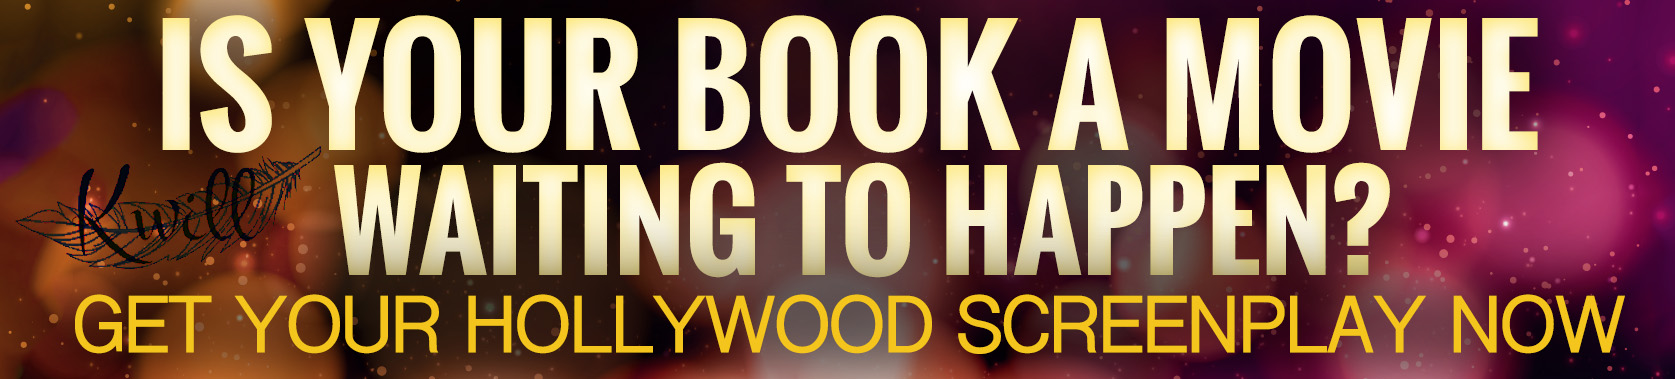 Book To Screenplay Services at Kwill